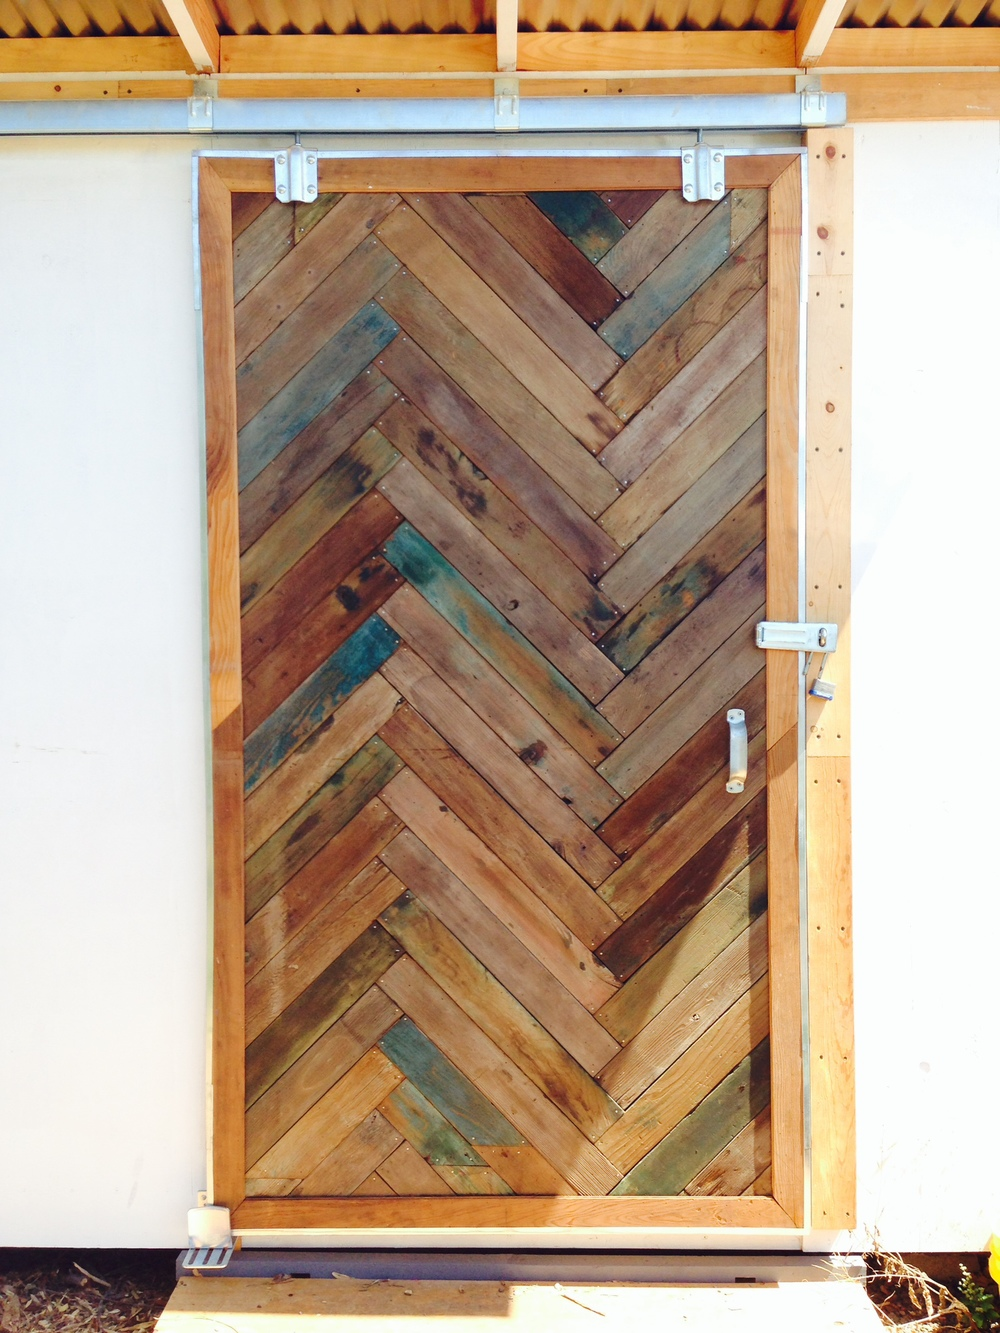 The wood to make this door was obtained from the Oxford Tract Greenhouses at UC Berkeley & The Toolshed Portal at The Student Organic Garden at UC Berkeley ... pezcame.com